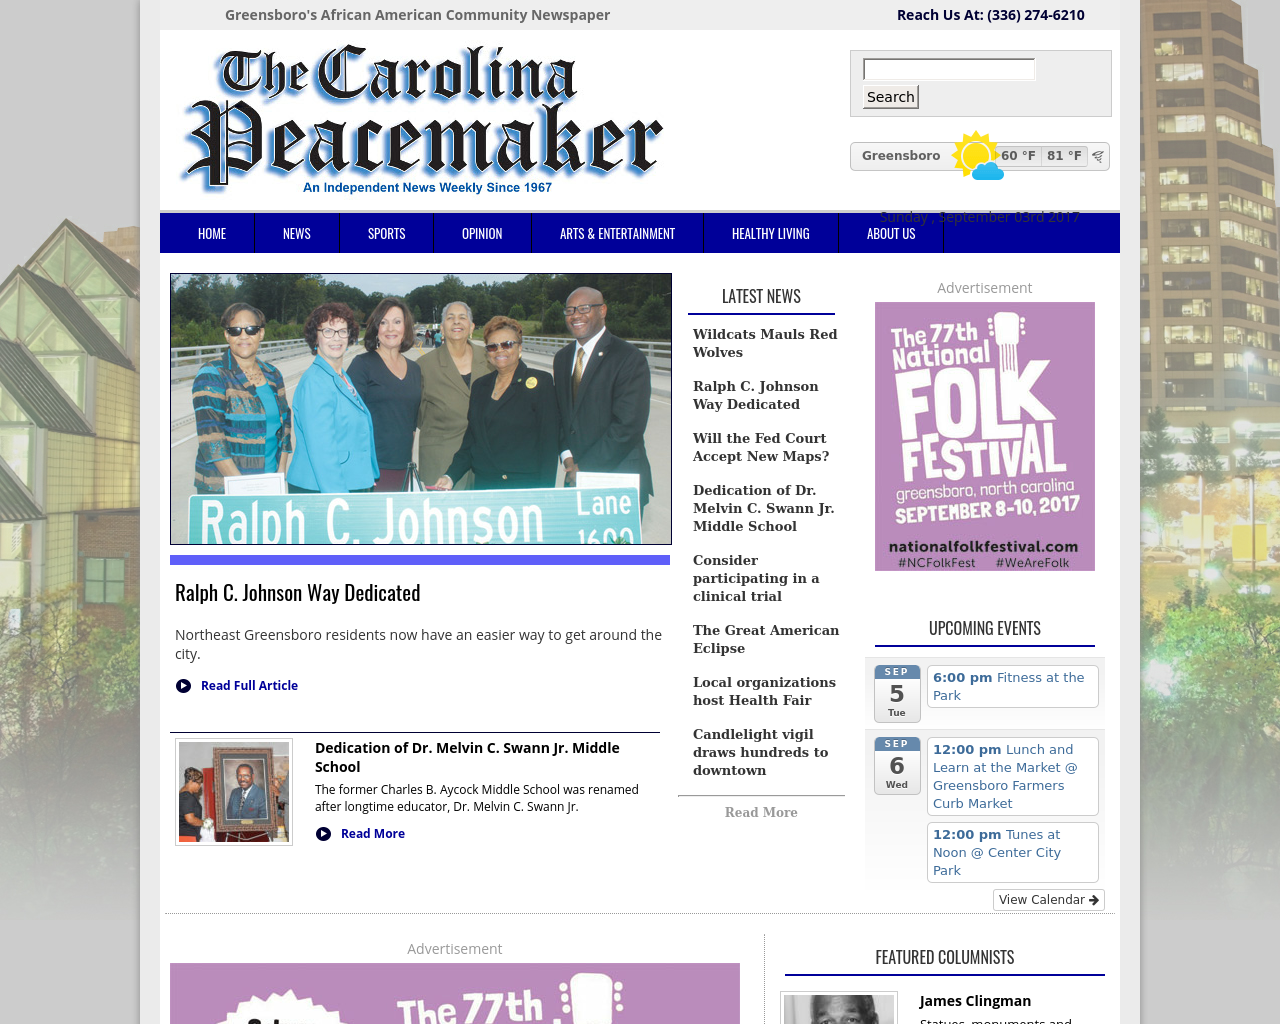 Carolina-Peacemaker-Advertising-Reviews-Pricing